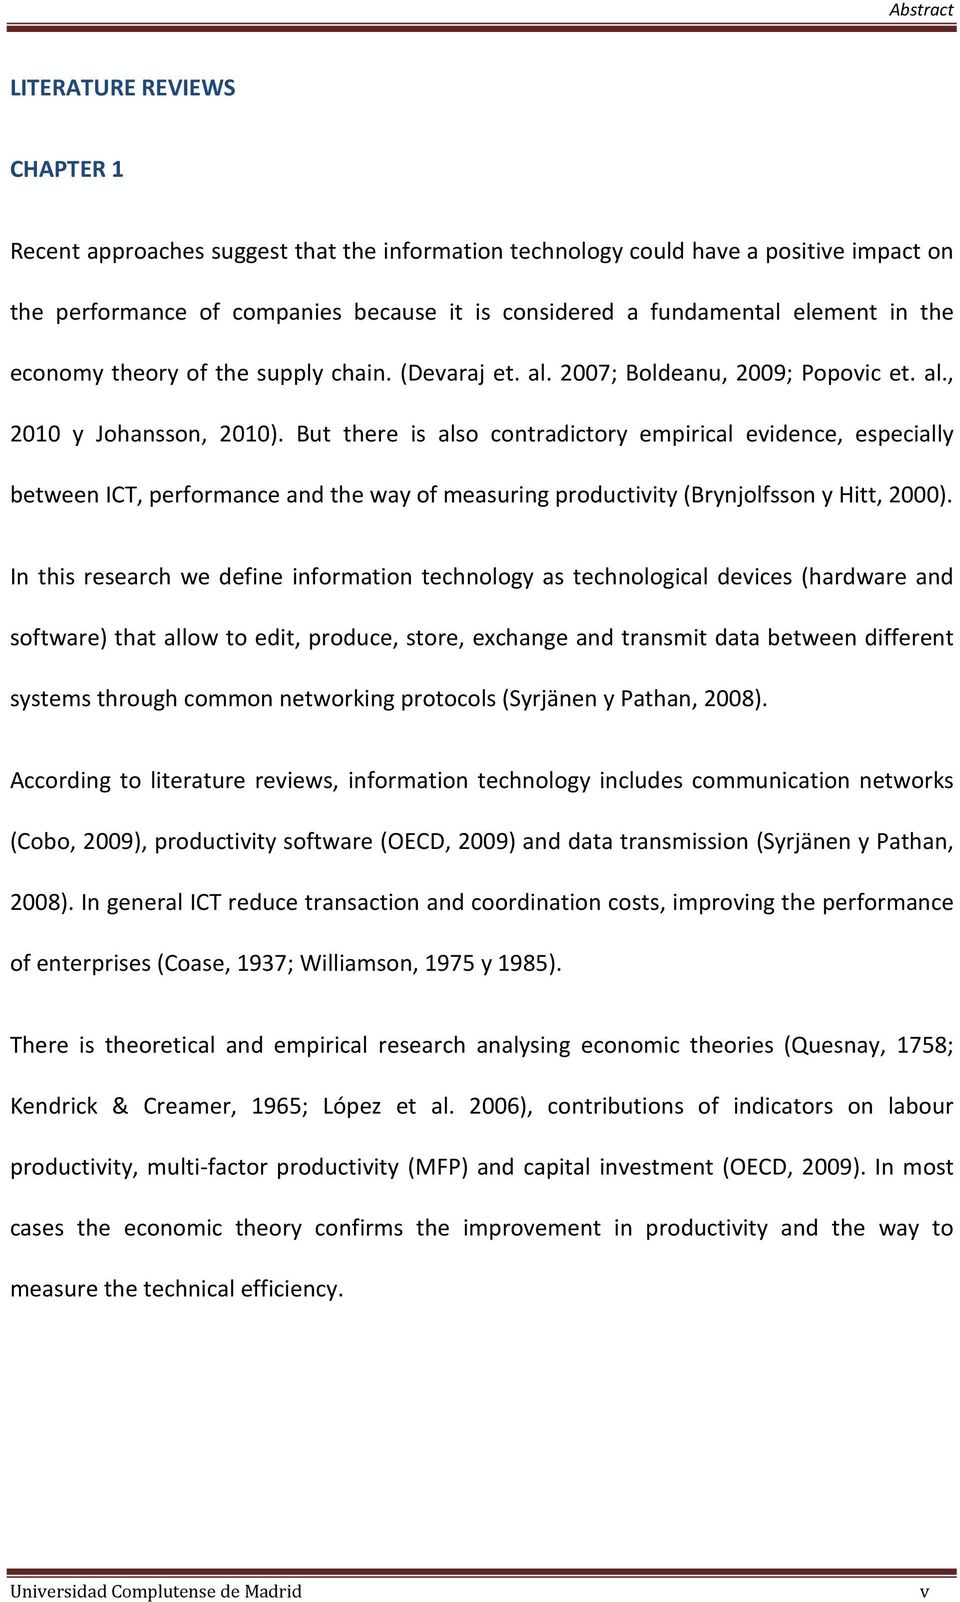 But there is also contradictory empirical evidence, especially between ICT, performance and the way of measuring productivity (Brynjolfsson y Hitt, 2000).